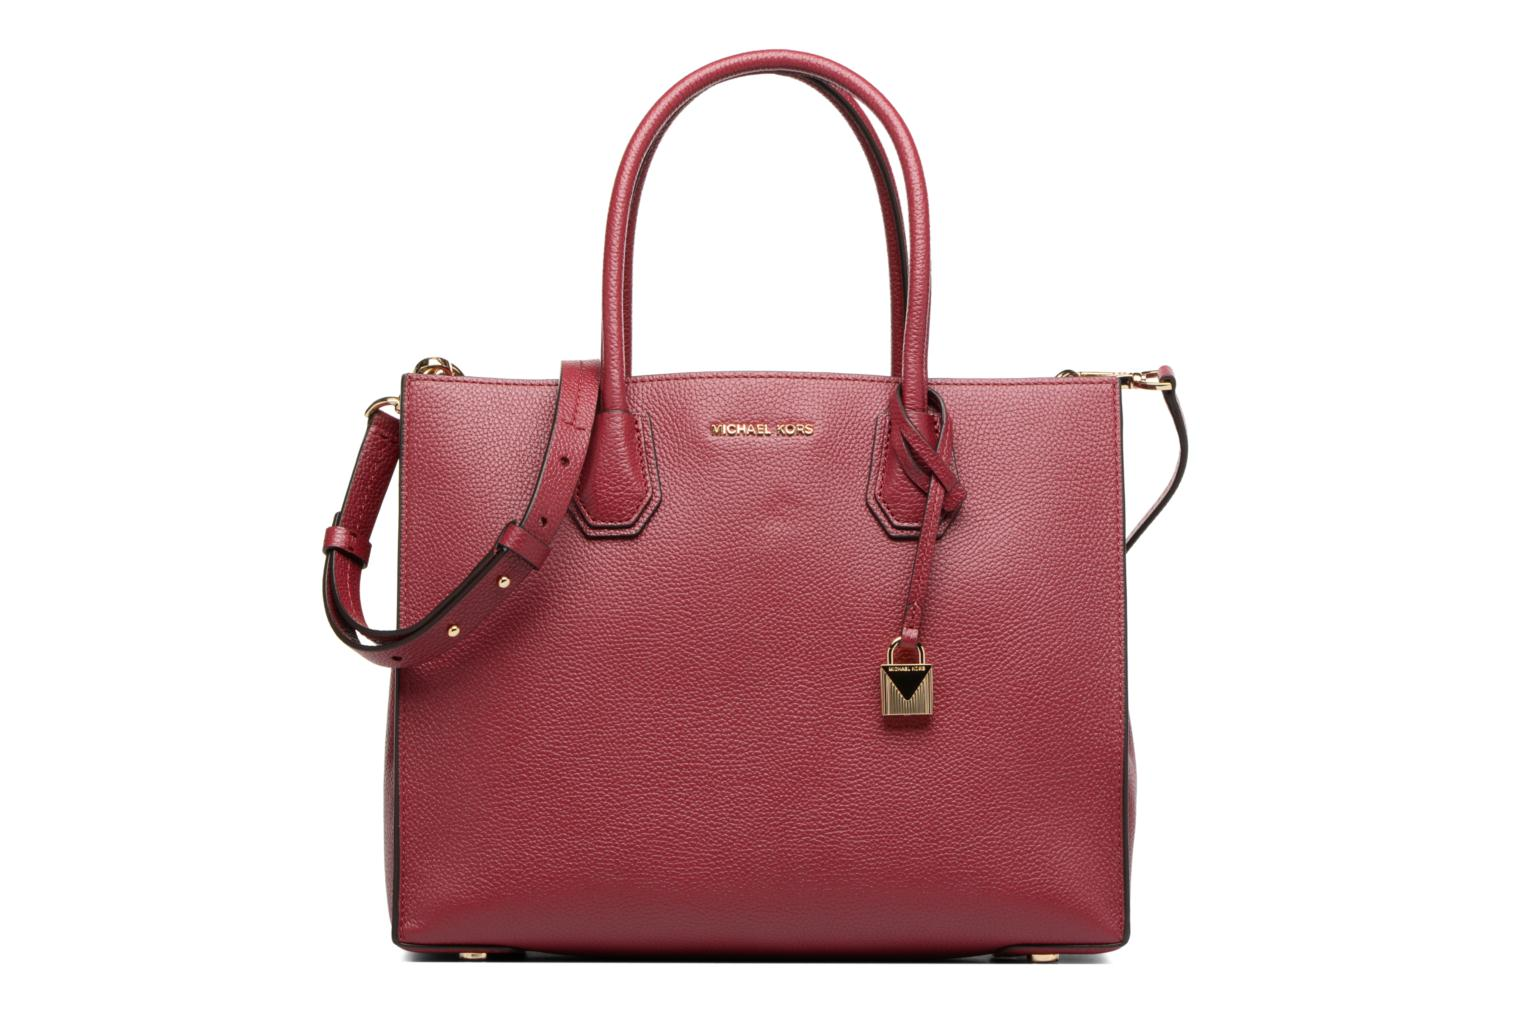 MERCER LARGE CONVERTIBLE TOTE LG 666 MULBERRY